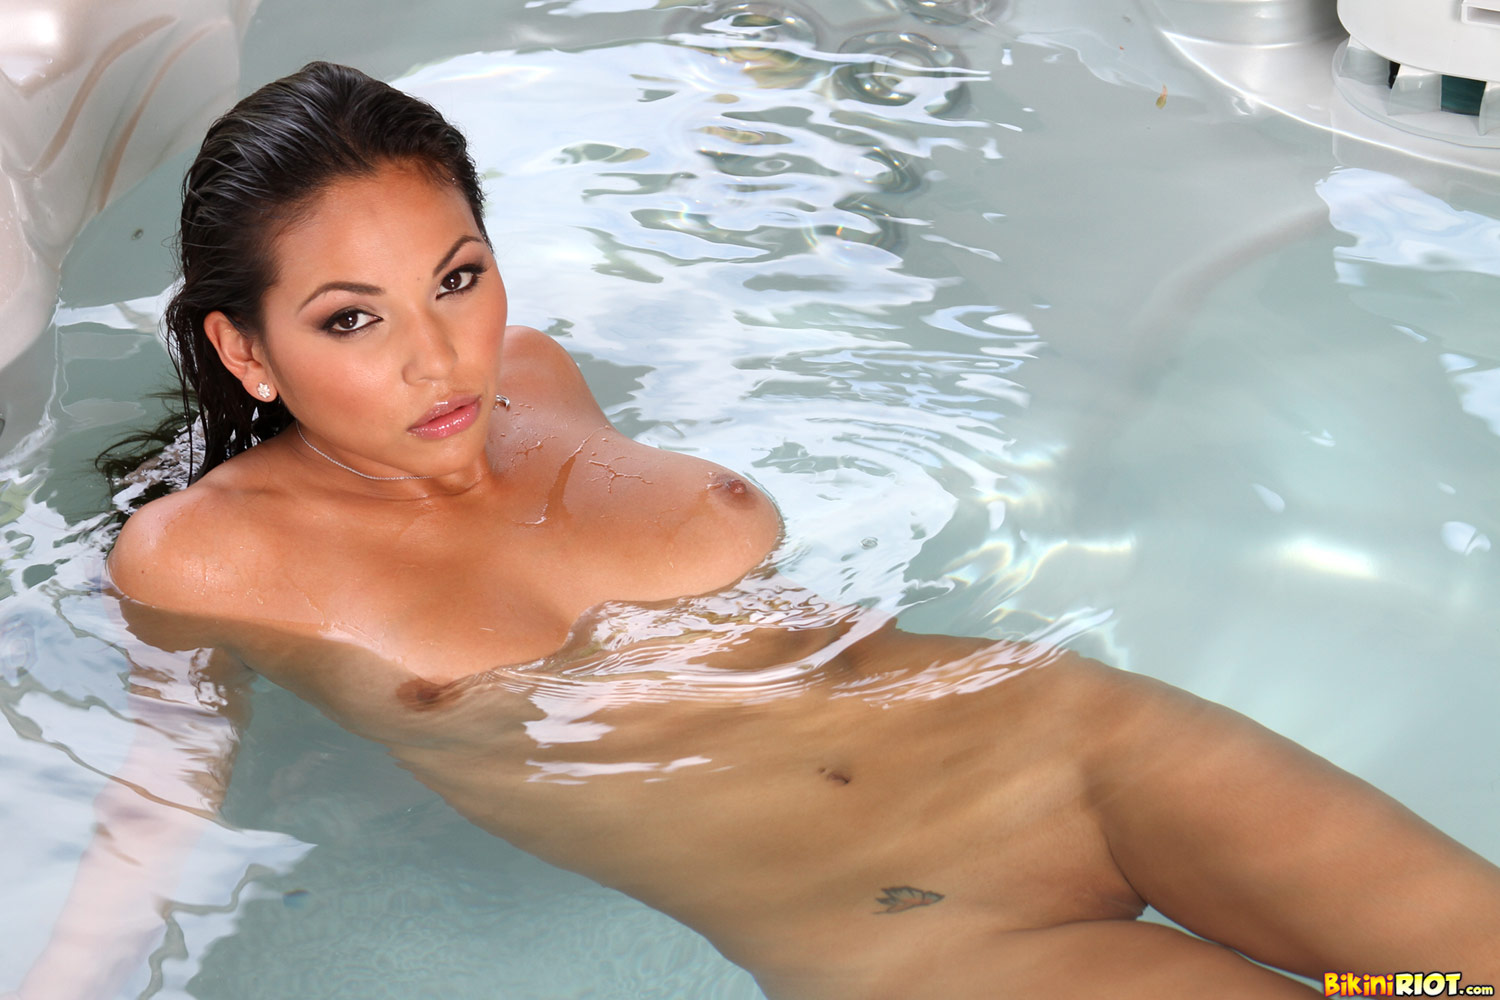 Naked asian girls in hot tub